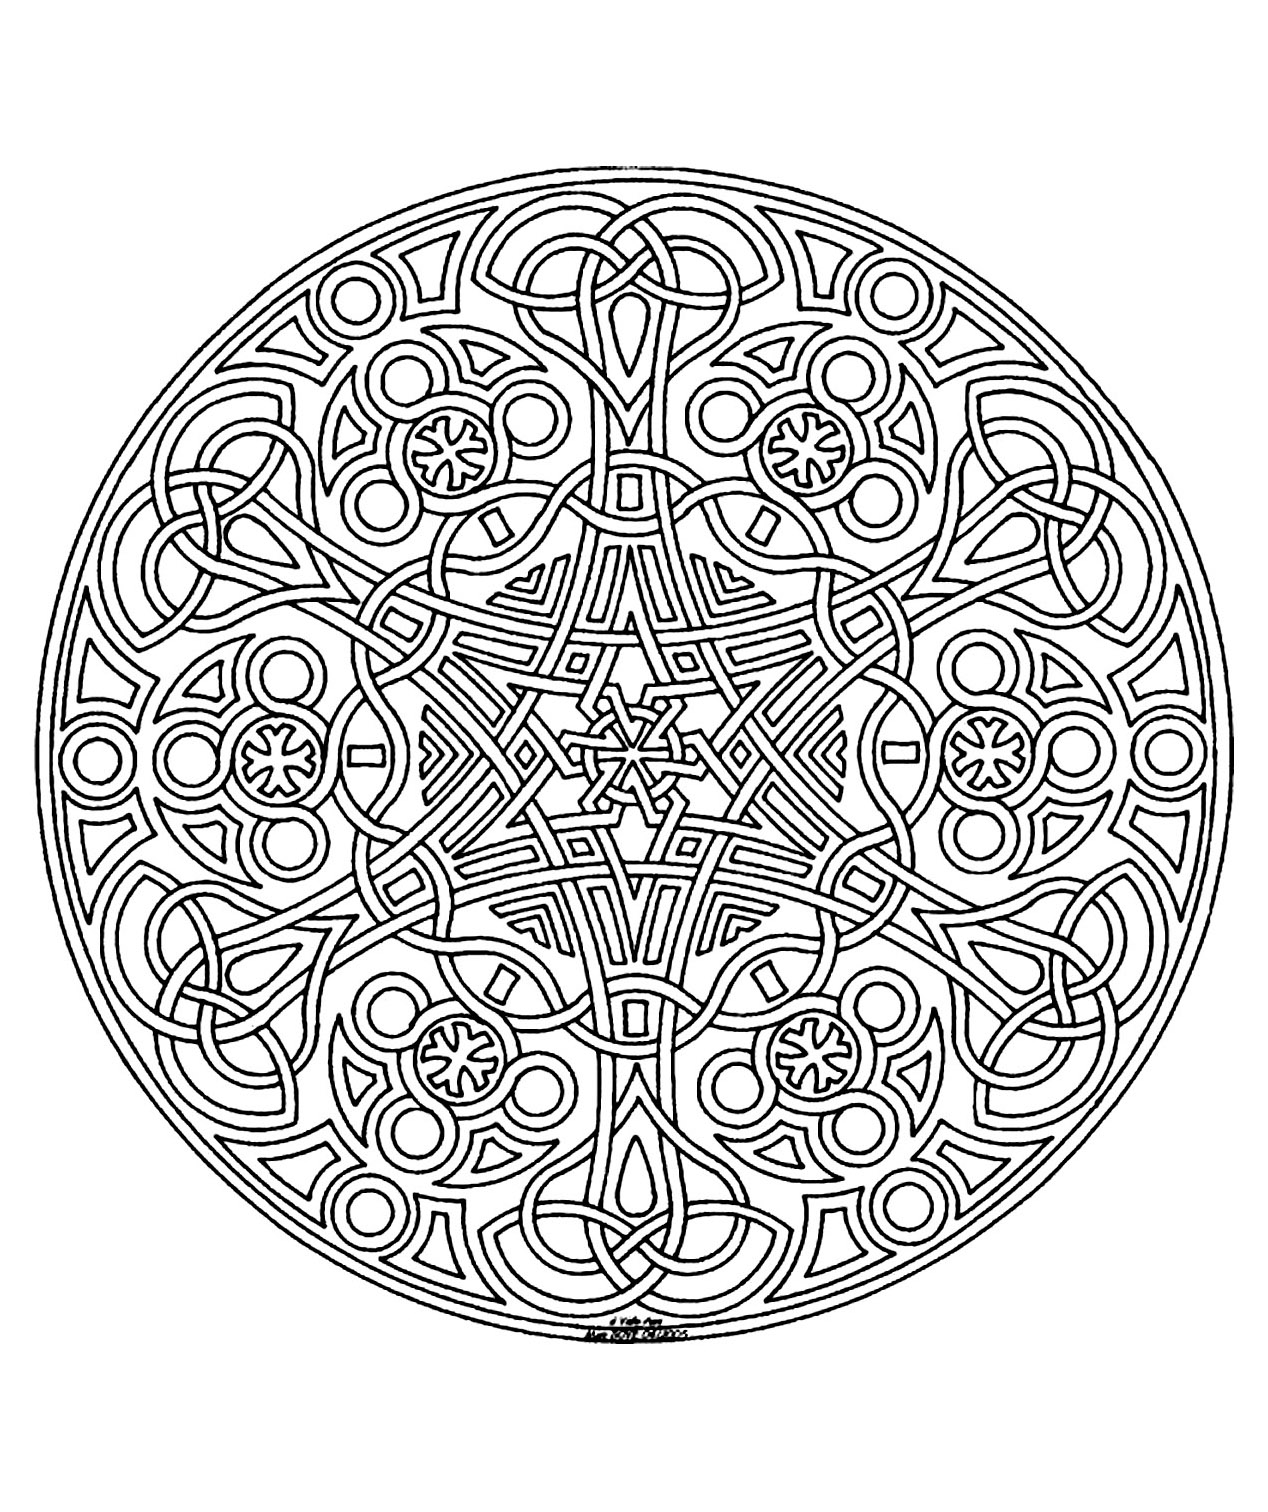 free printable mandalas to color for adults coloring pages free printable coloring books pdf for color to free printable adults mandalas